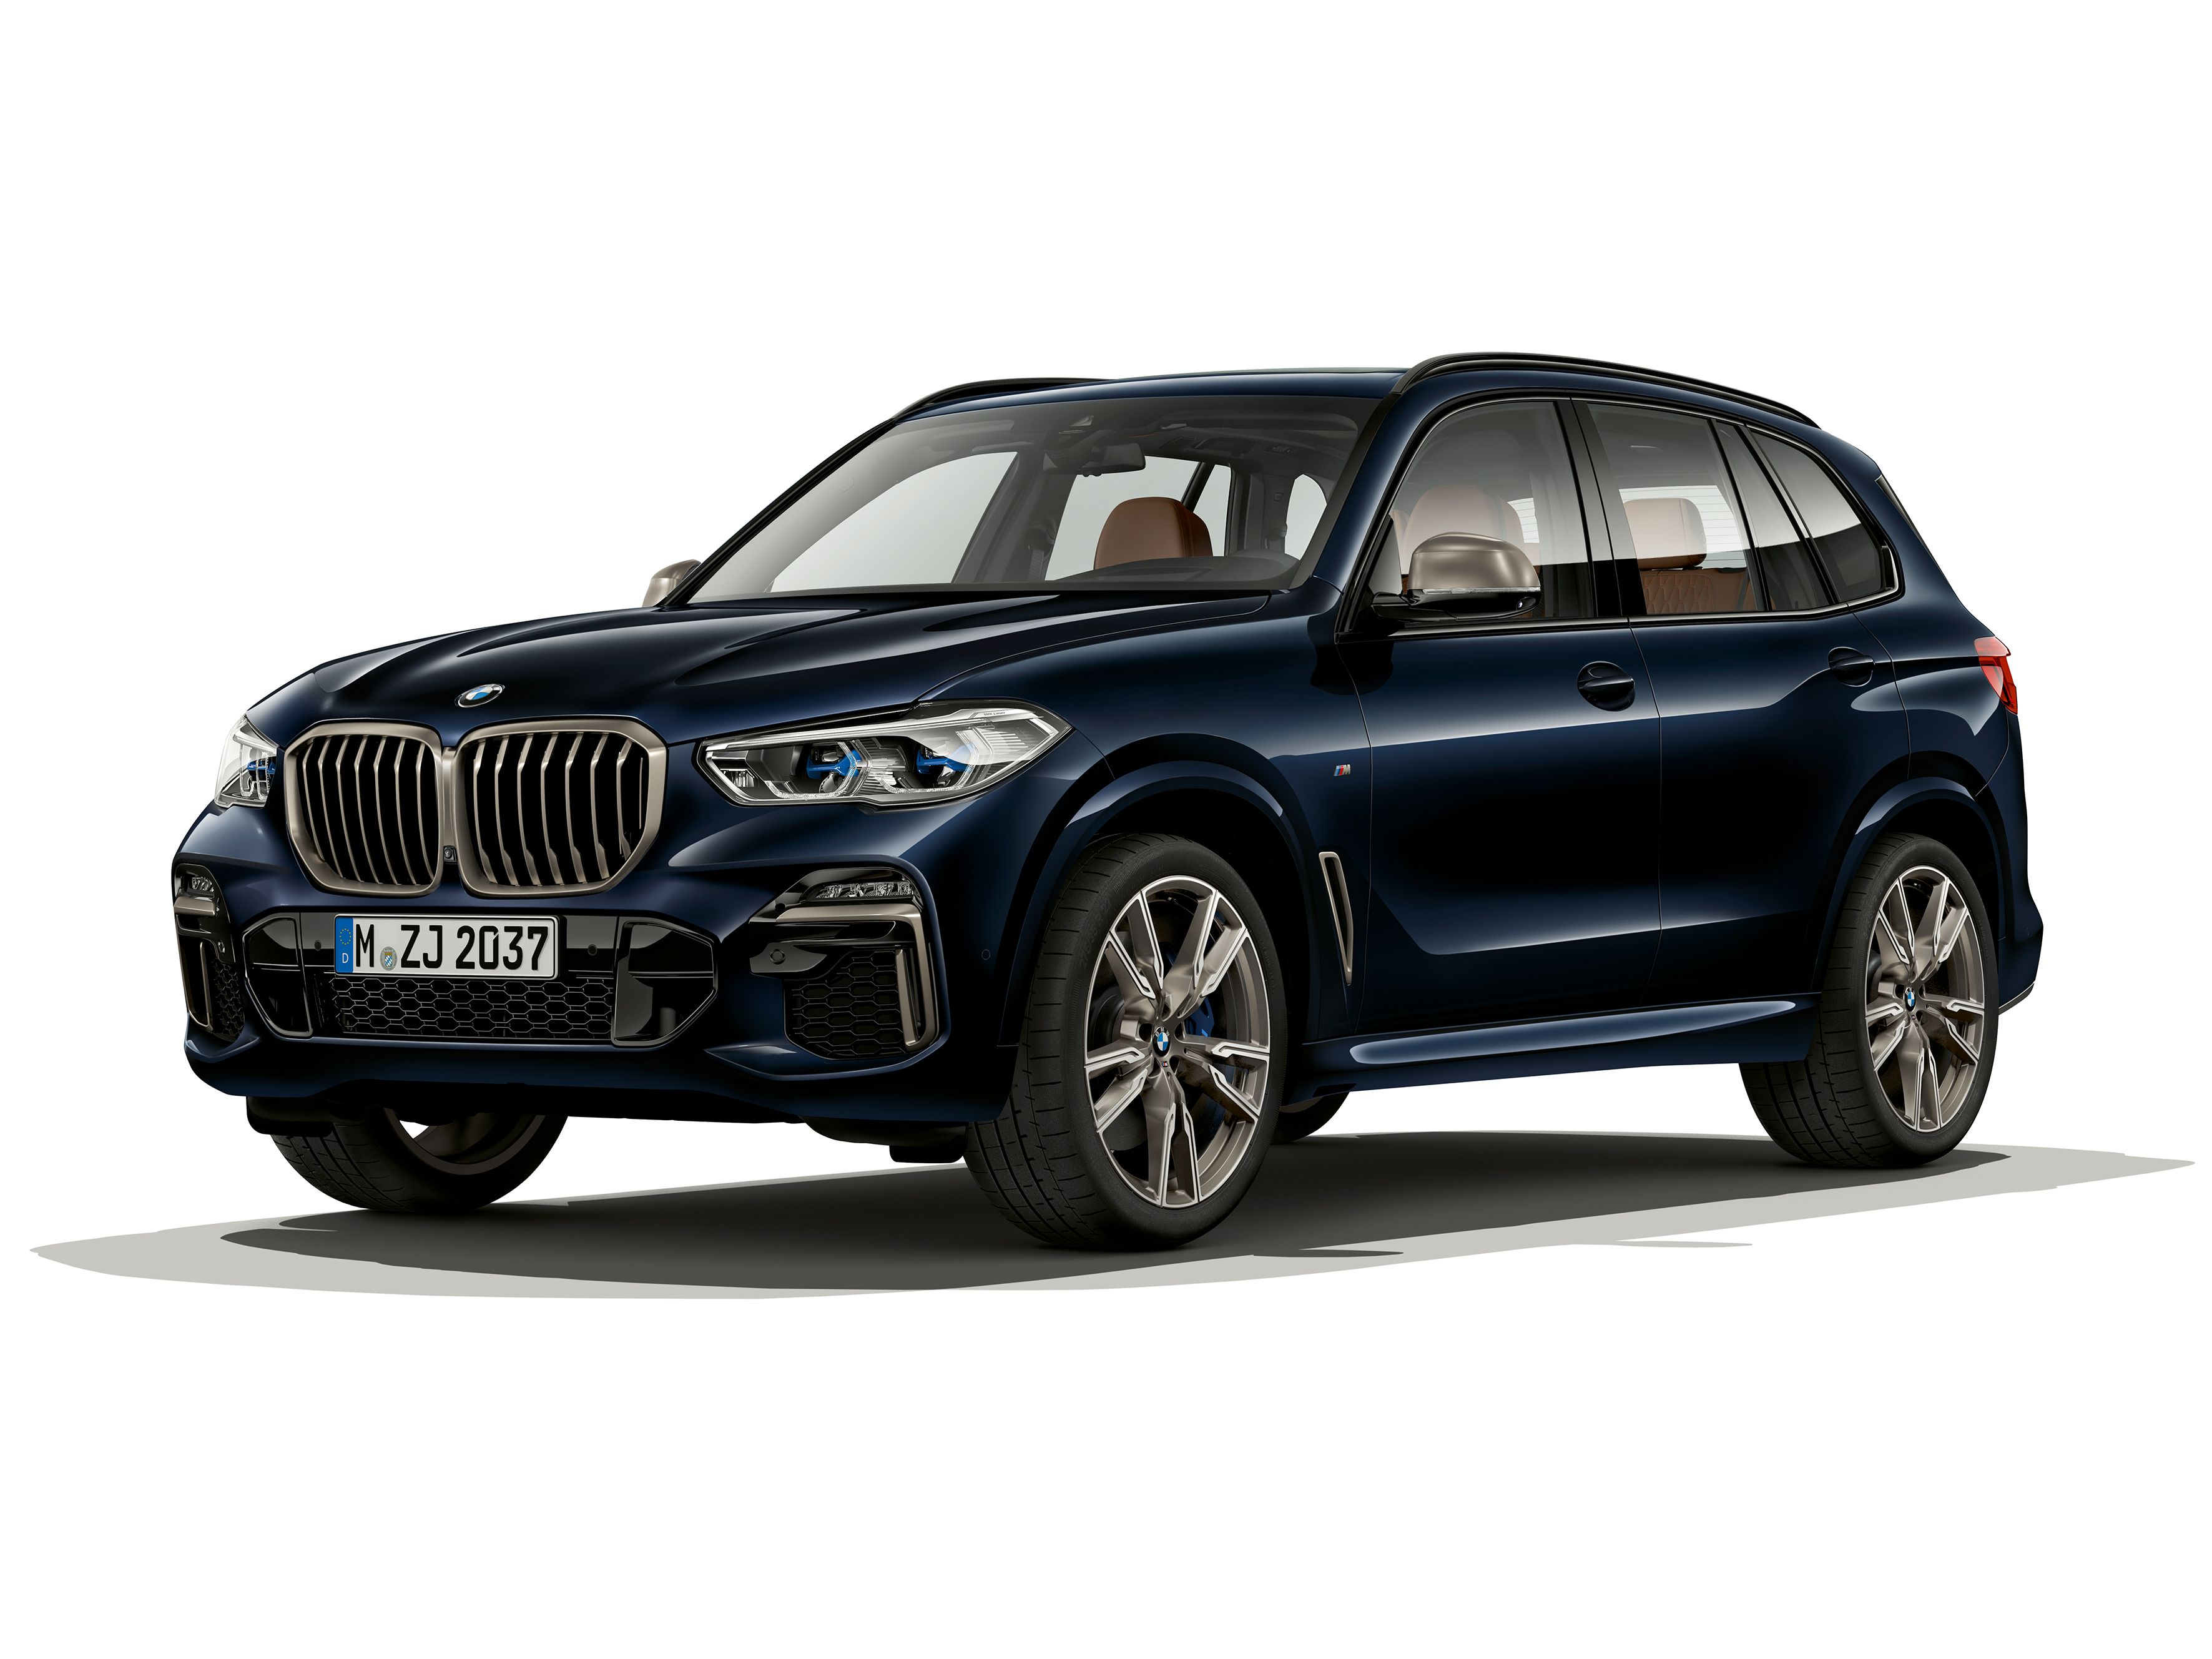 The 2020 Bmw X5 M50i Is Awash In Power And Opulence